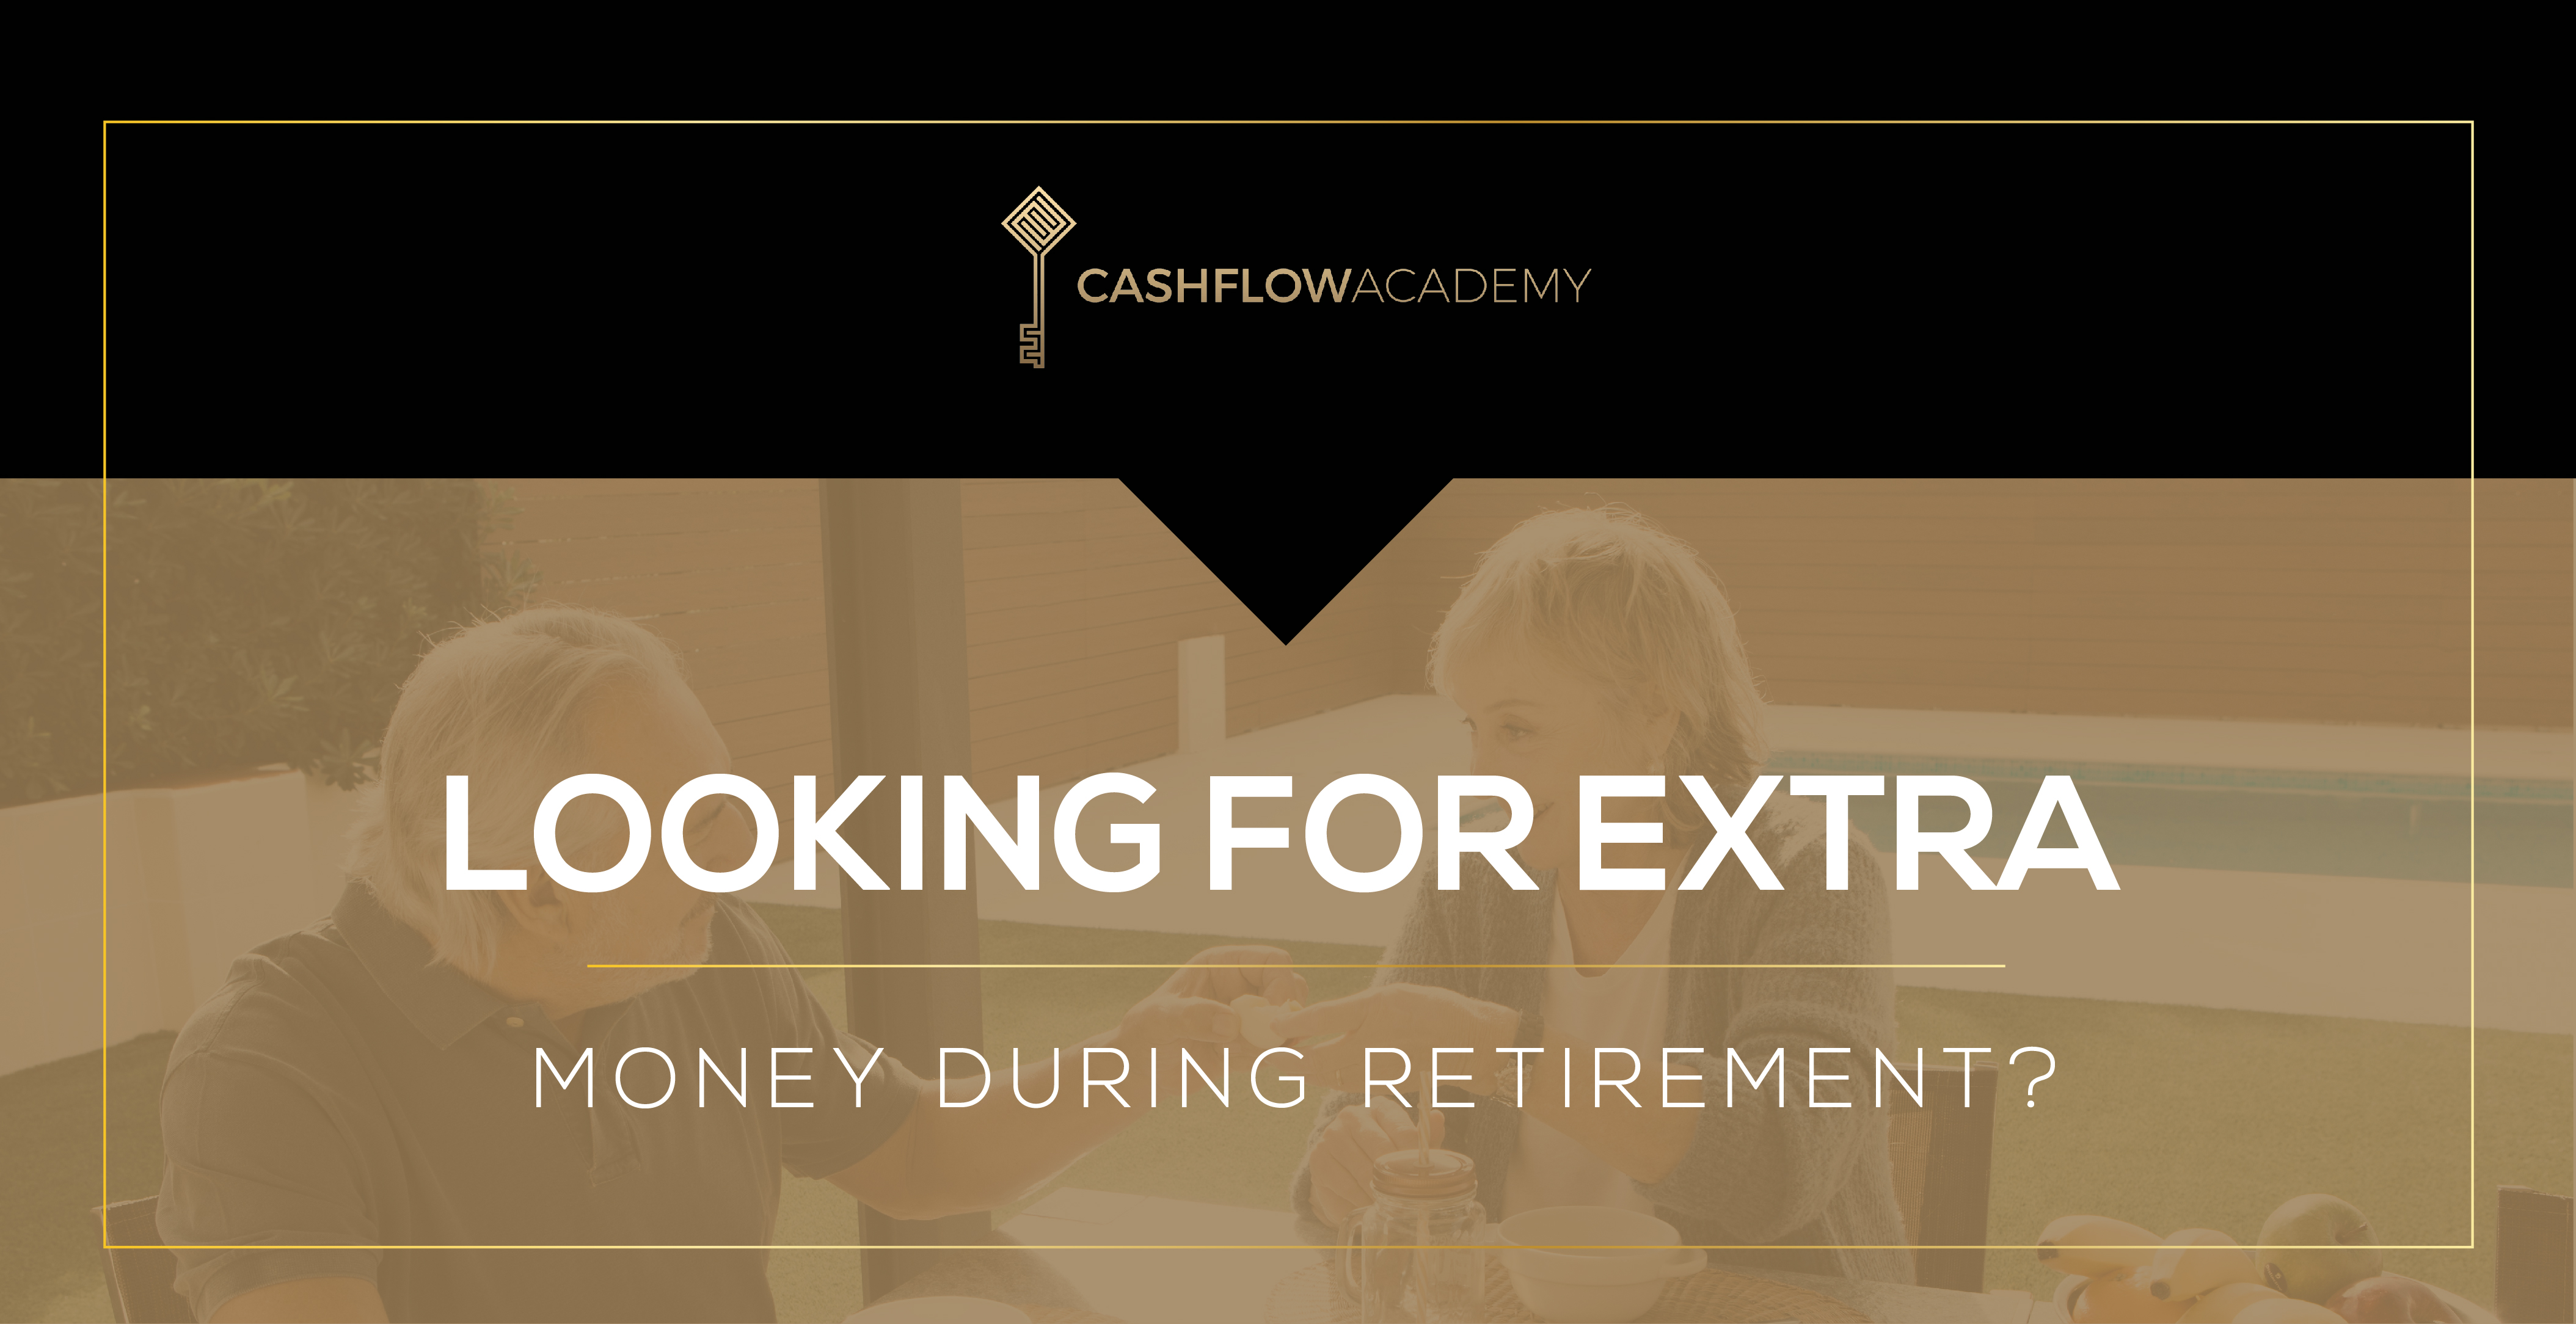 Looking for extra money during retirement?